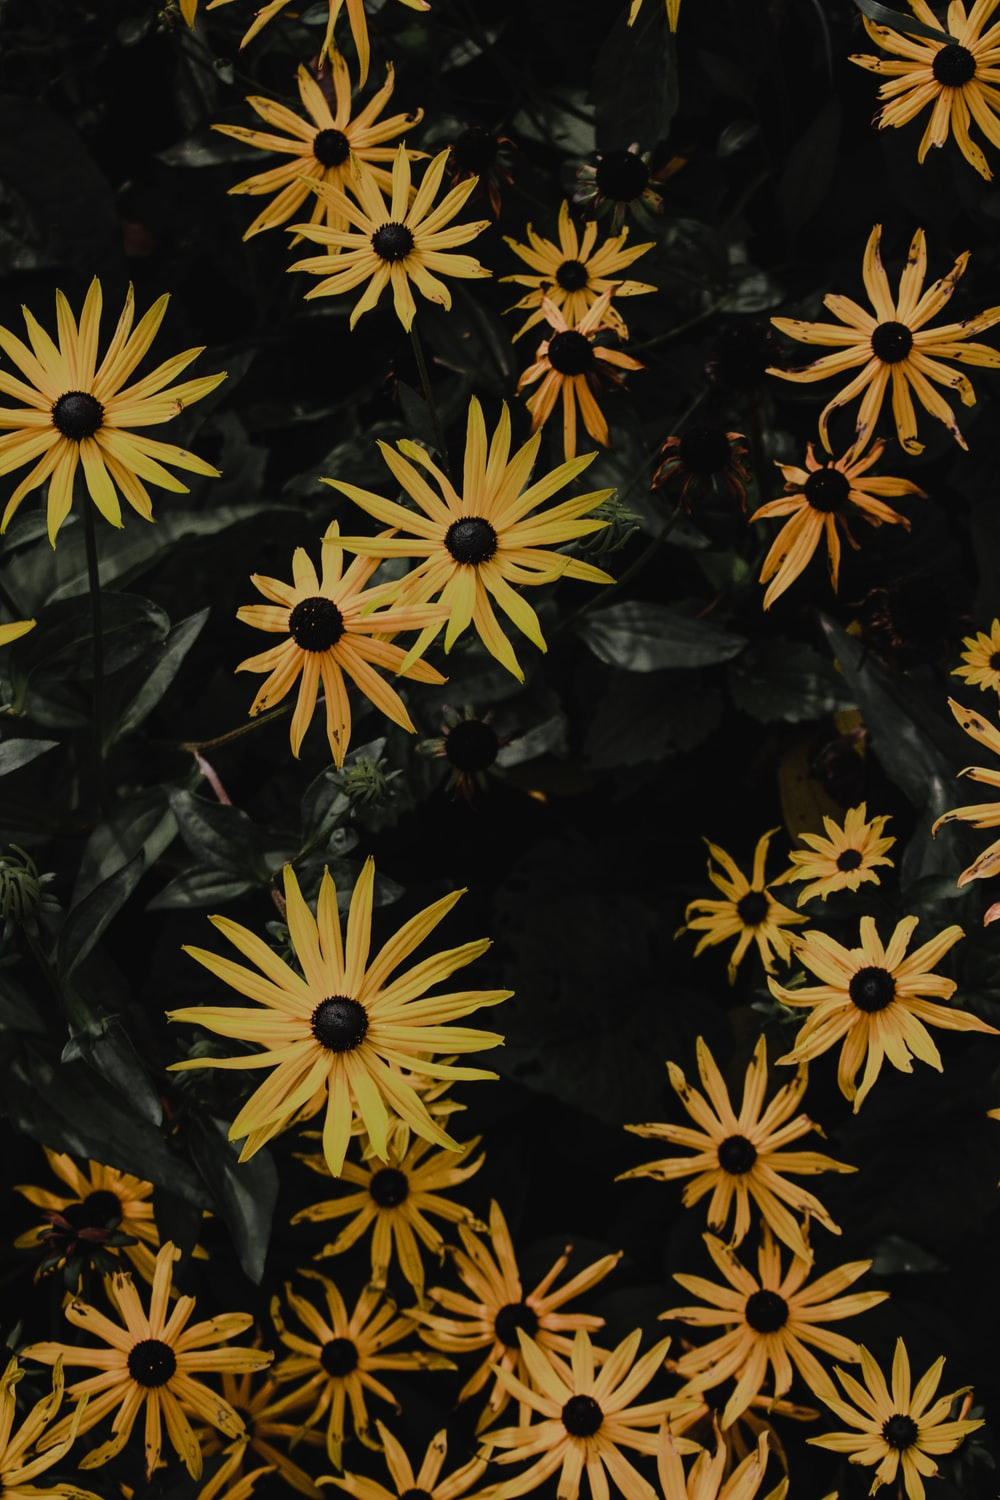 yellow and black flowers in close up photography